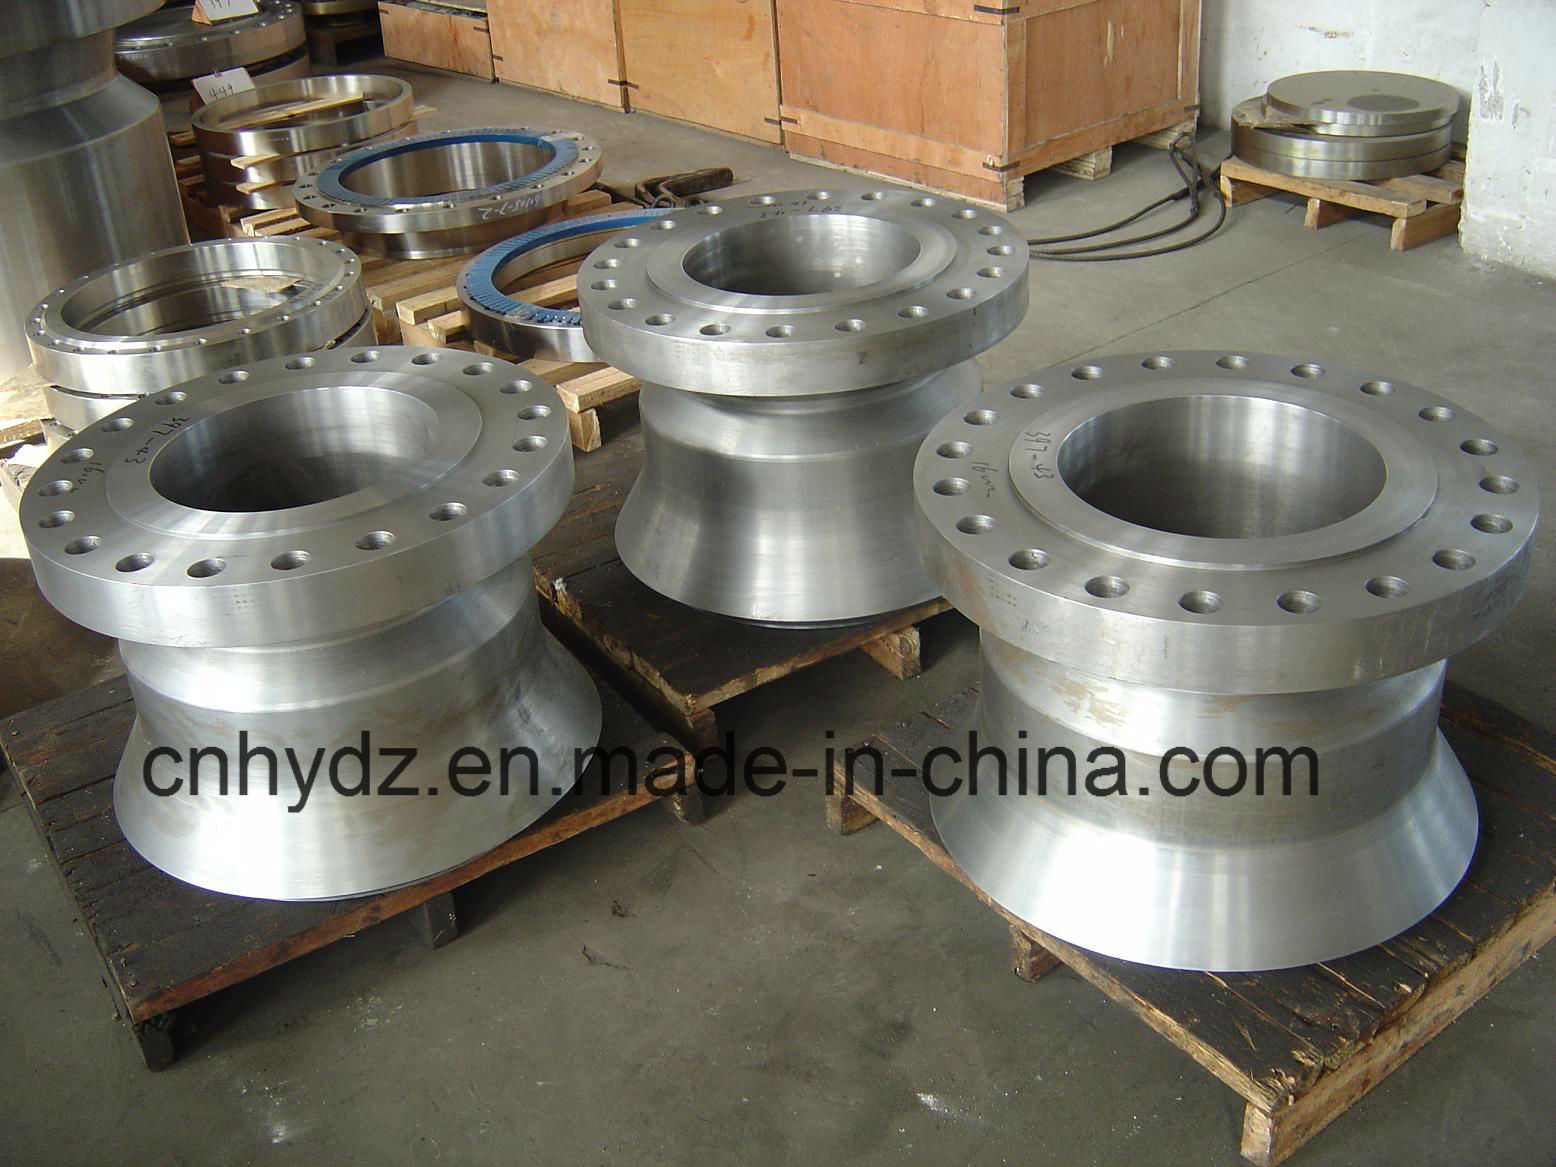 Hot Forged Reducing Nozzle Flange of Material A182 F11